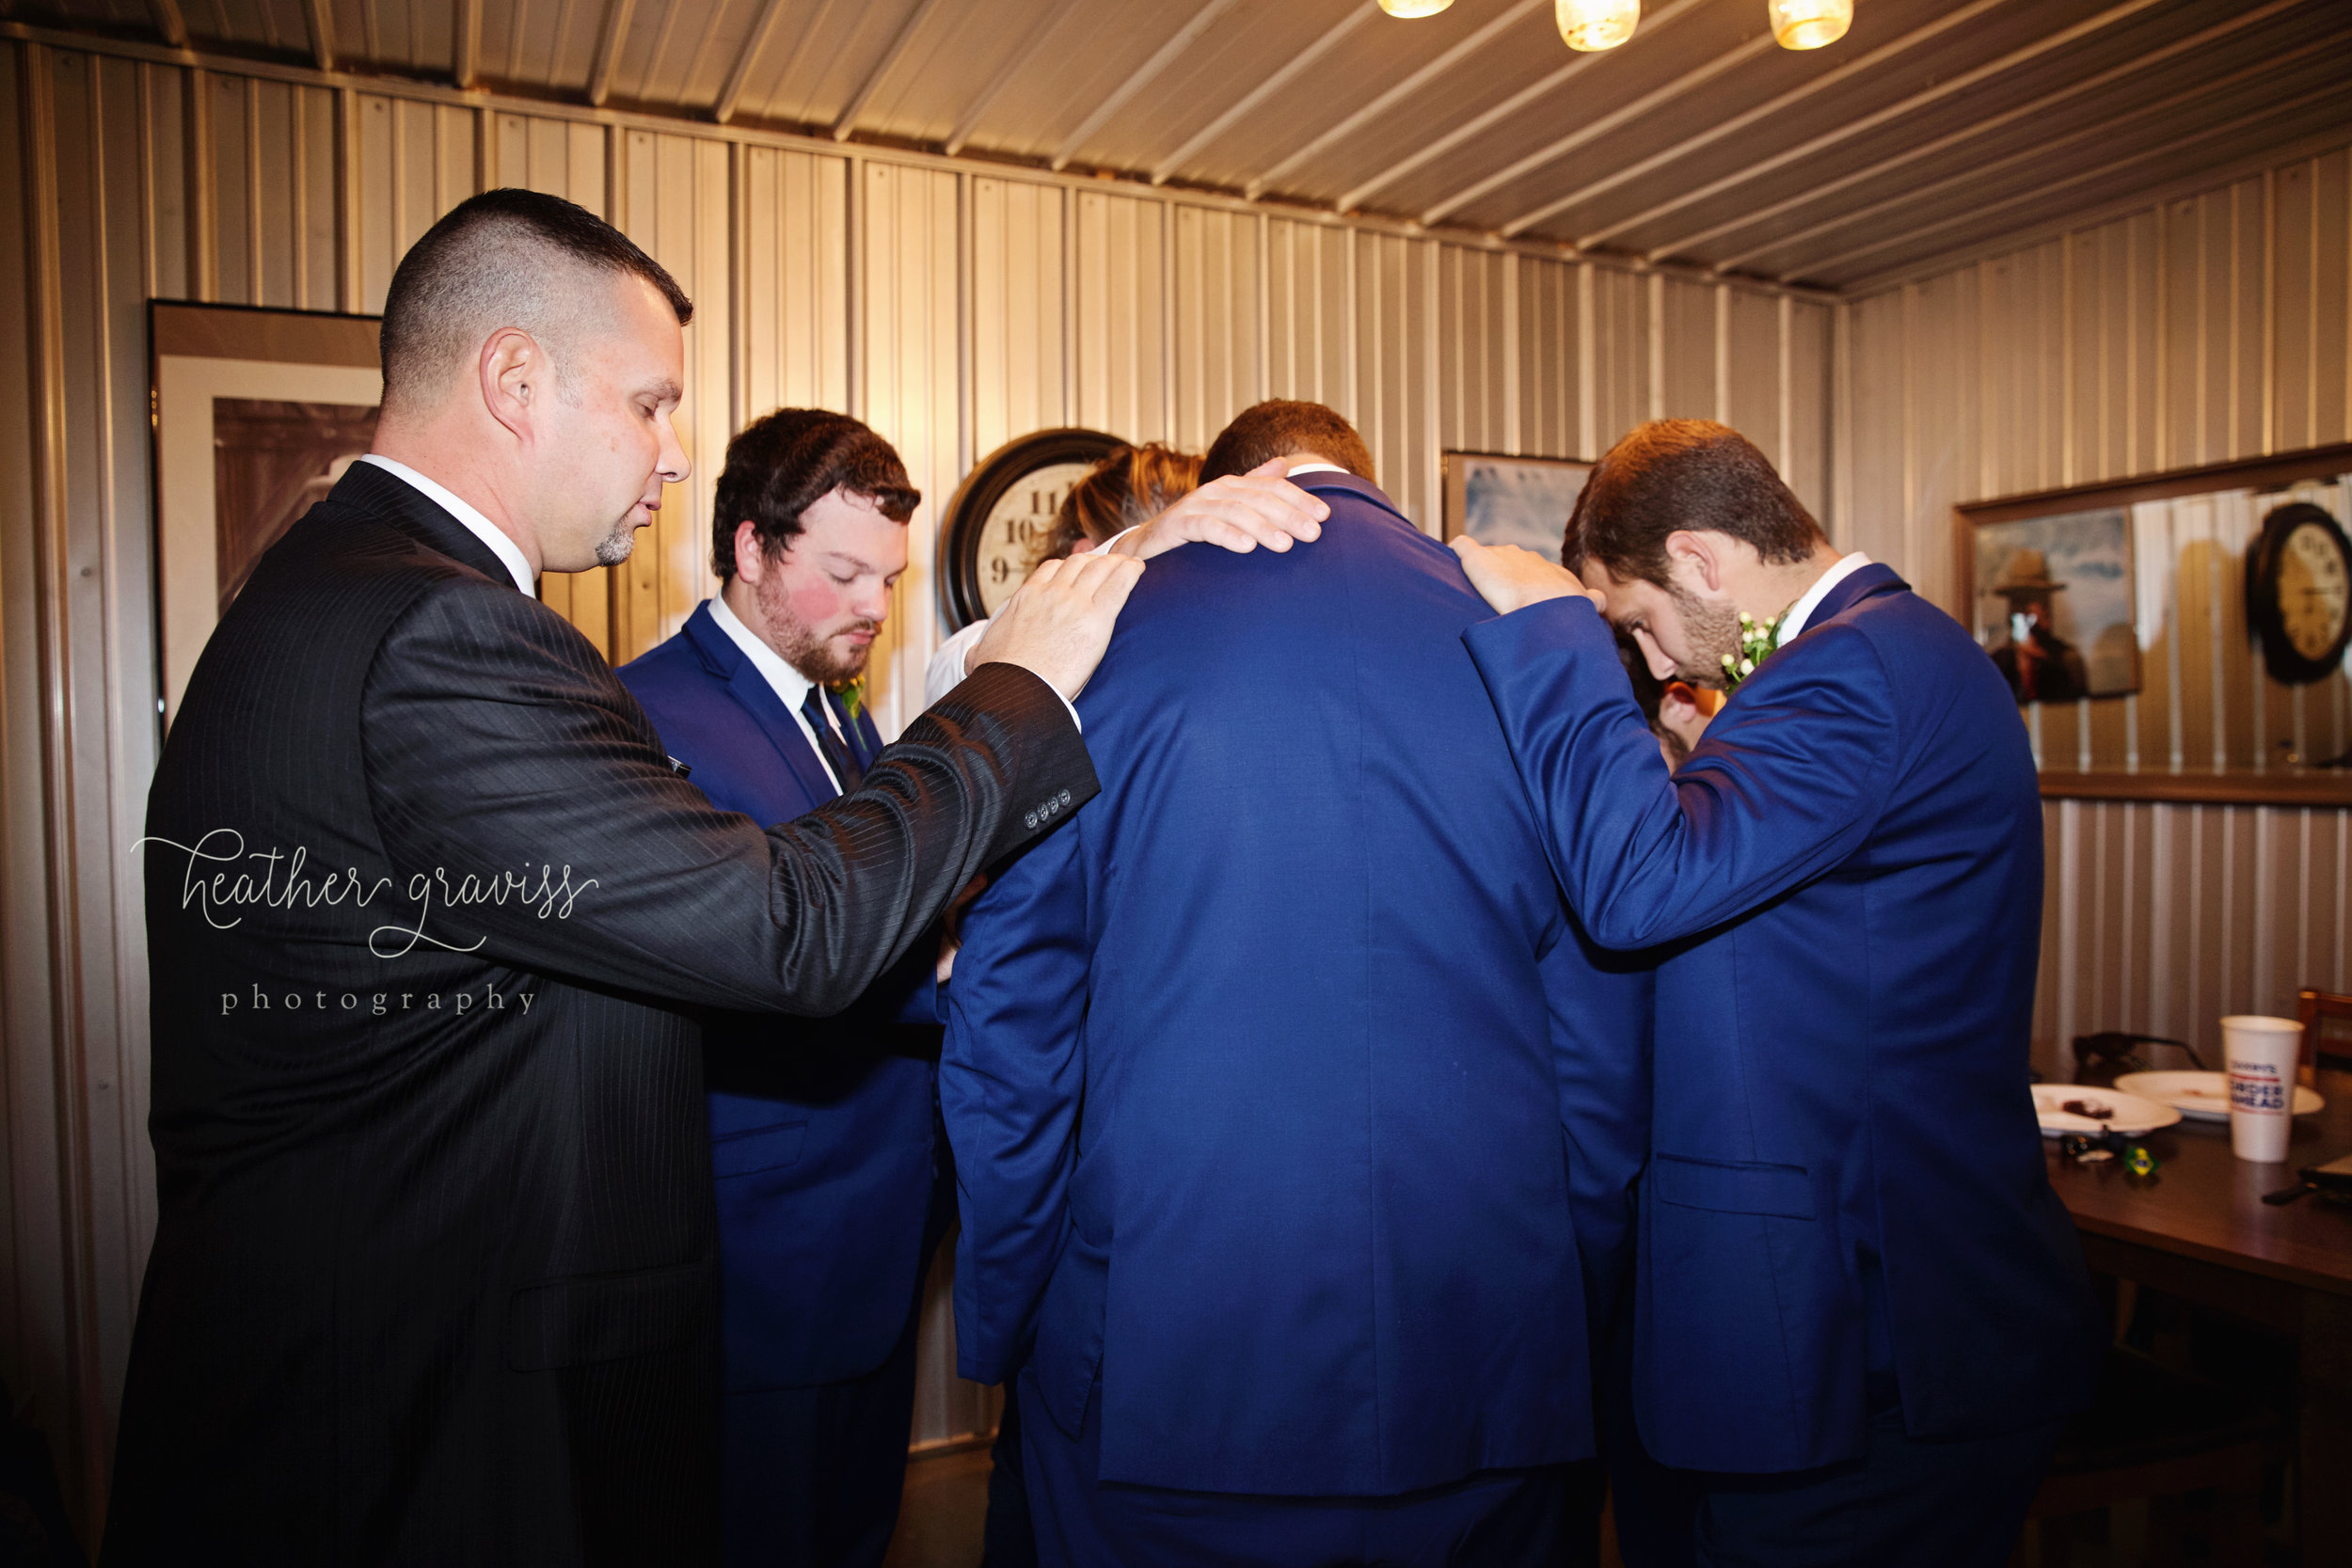 23-prayer-for-groomsmen.jpg